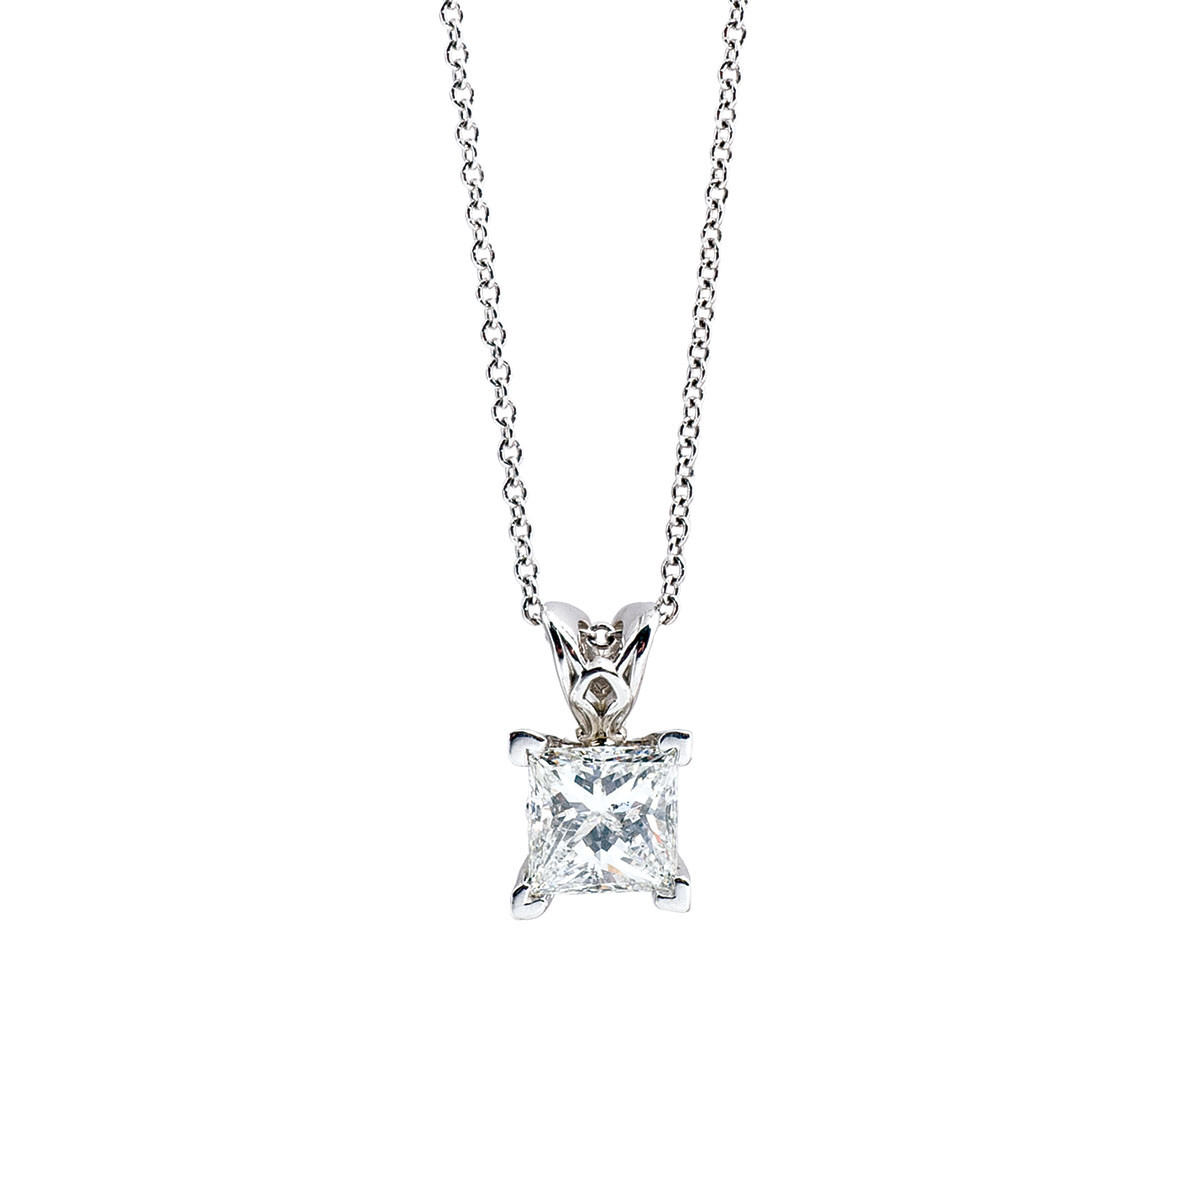 New 1.18 CT Diamond Pendant